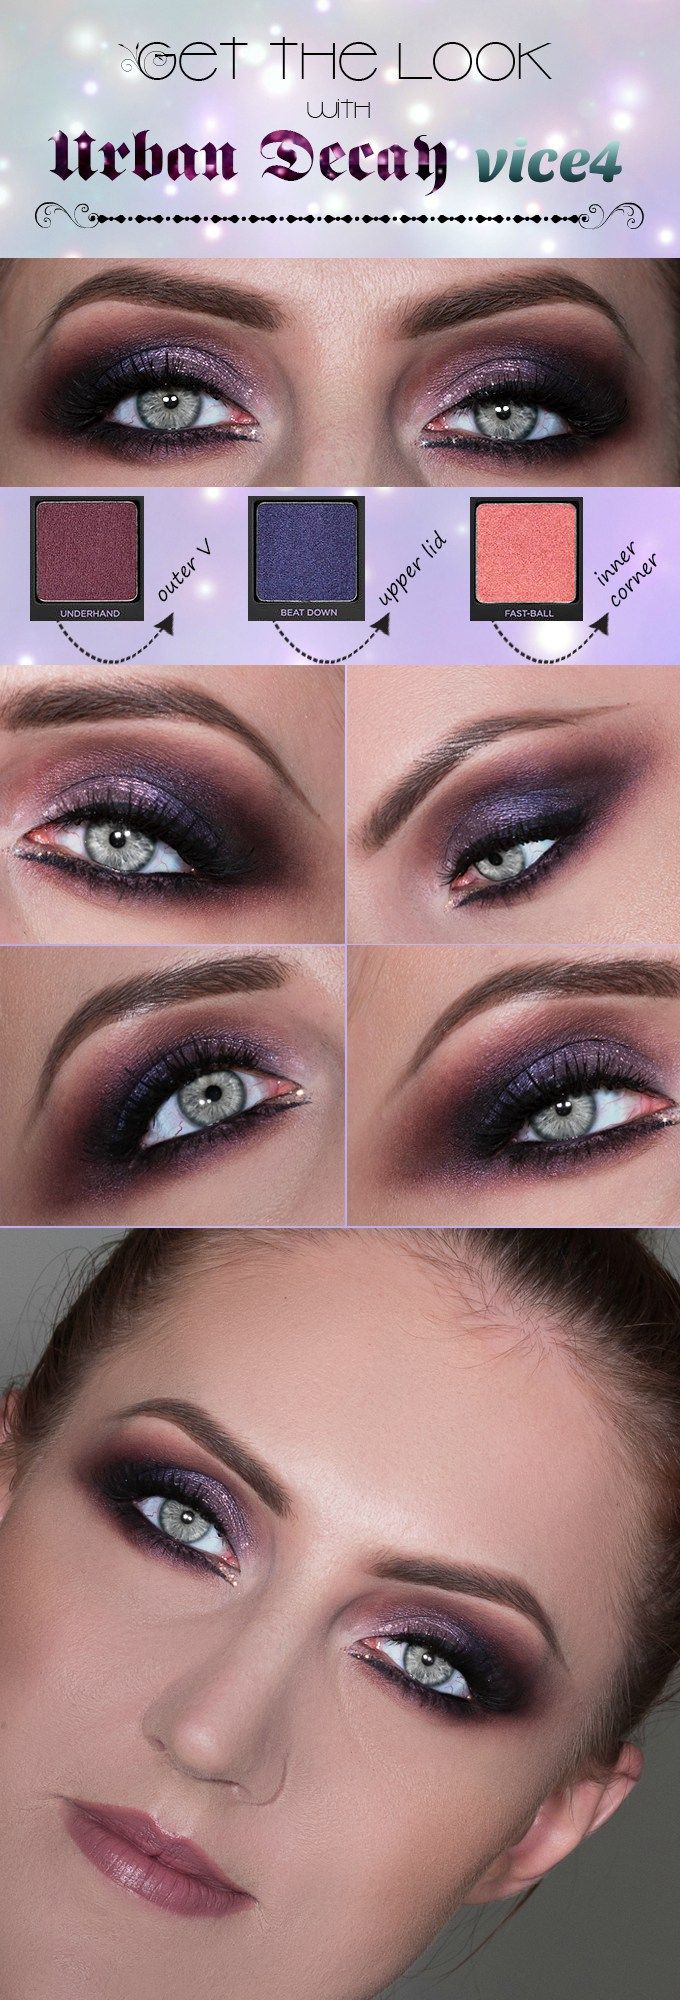 Still in doubt what you're gonna wear as your New Year makeup tonight? I have a very festive and sexy purple makeup look with subtle glitter…